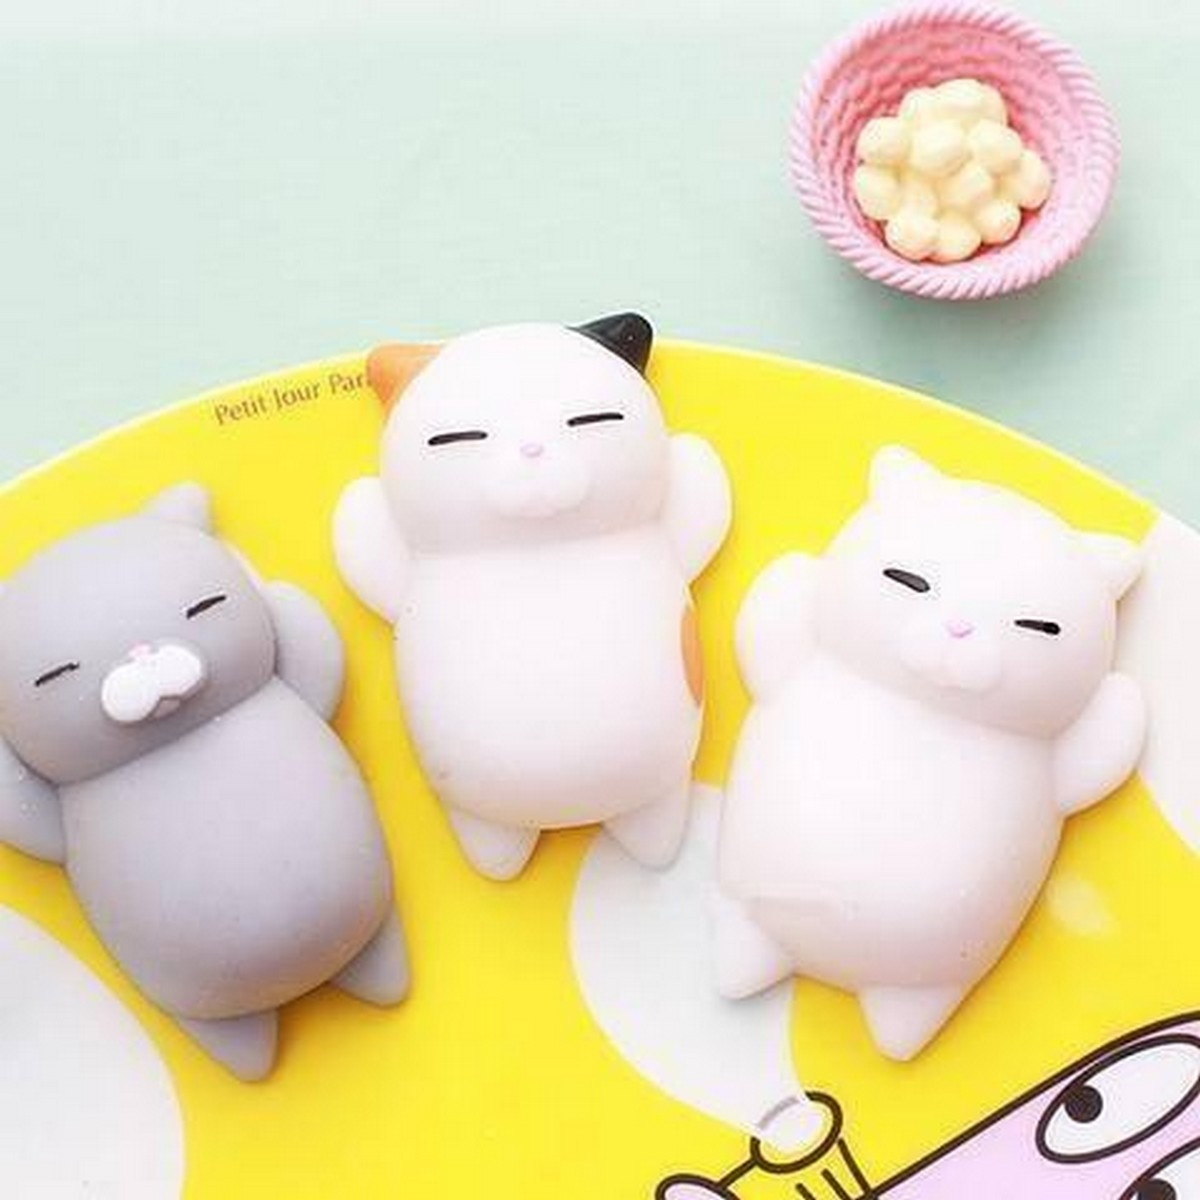 Get 6 Skinlee Cartoon Cat Squishy Toy Stress Relief Soft Mini Animal Squeeze Toy